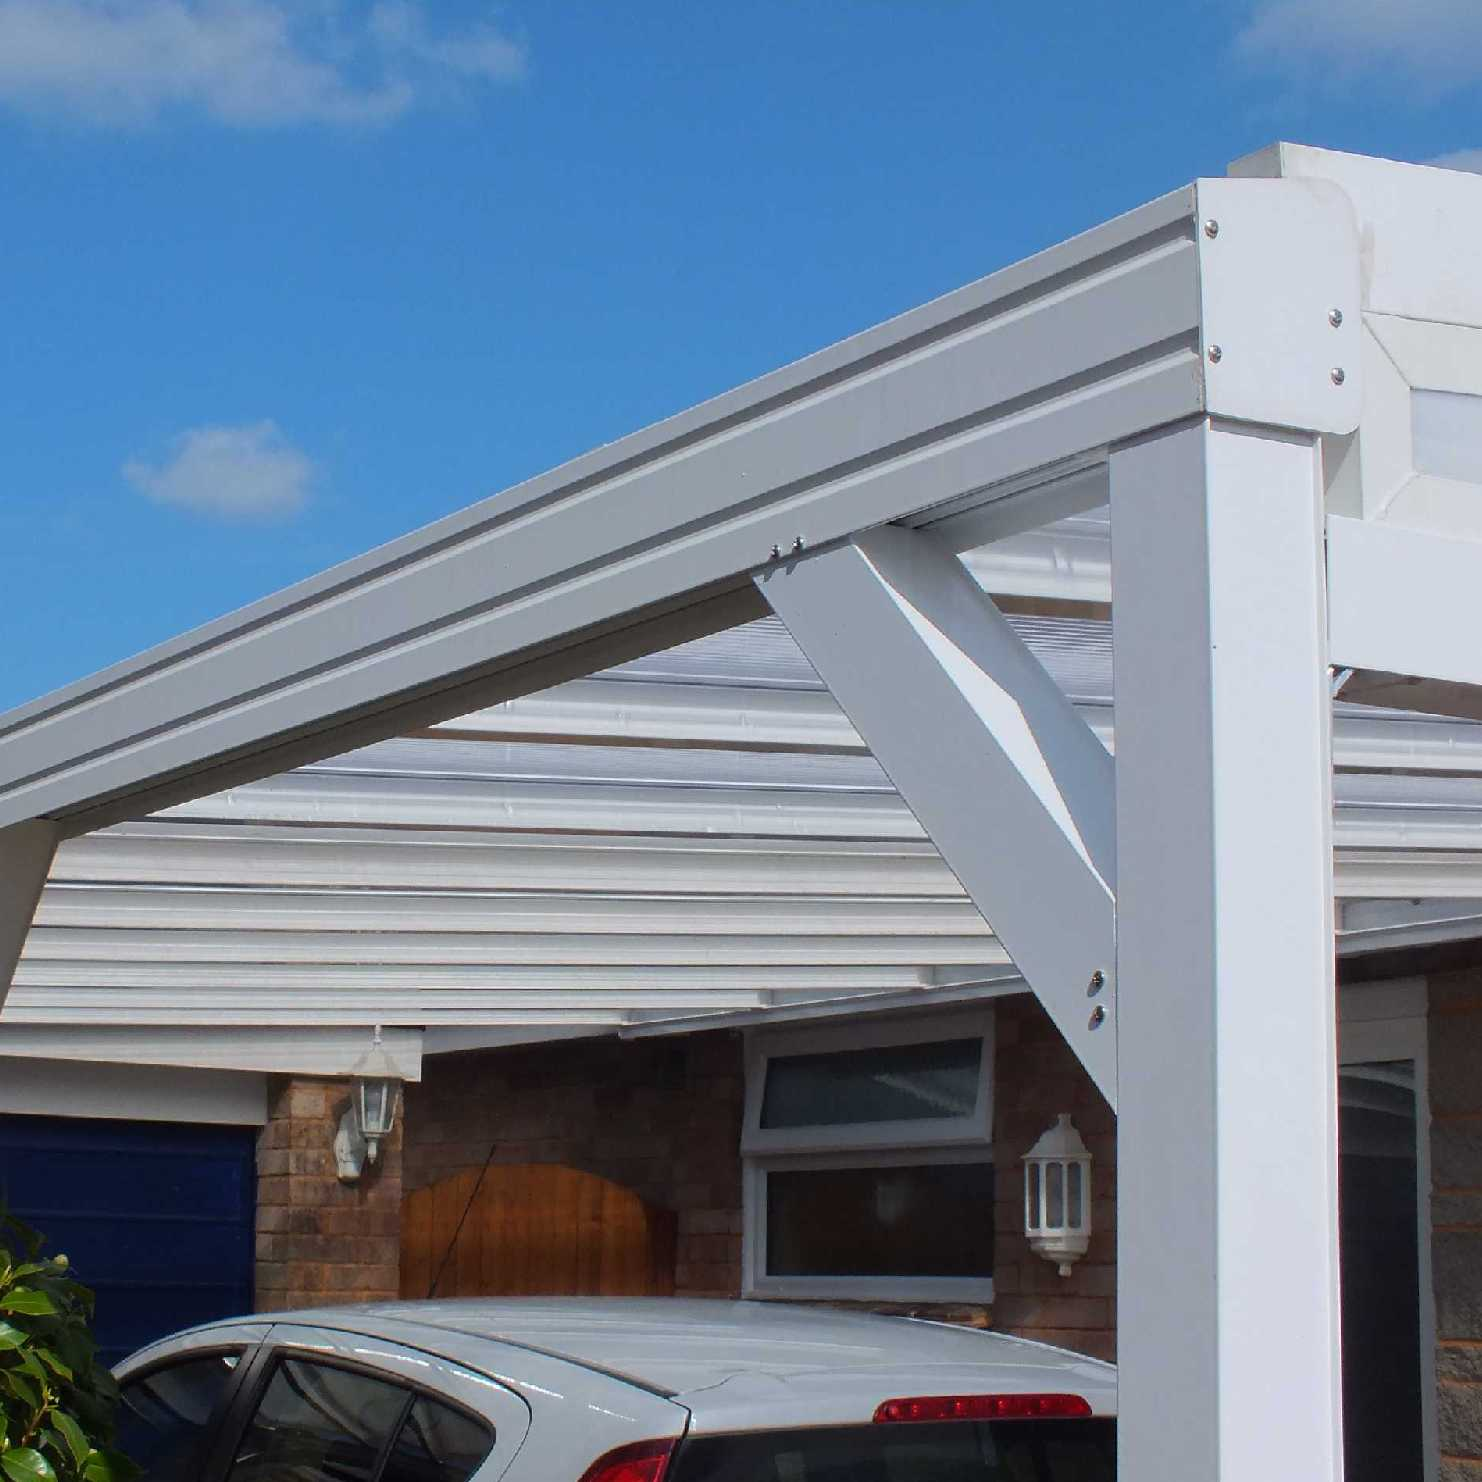 Buy Omega Smart  White Lean-To Canopy with 16mm Polycarbonate Glazing - 10.6m (W) x 2.0m (P), (5) Supporting Posts online today